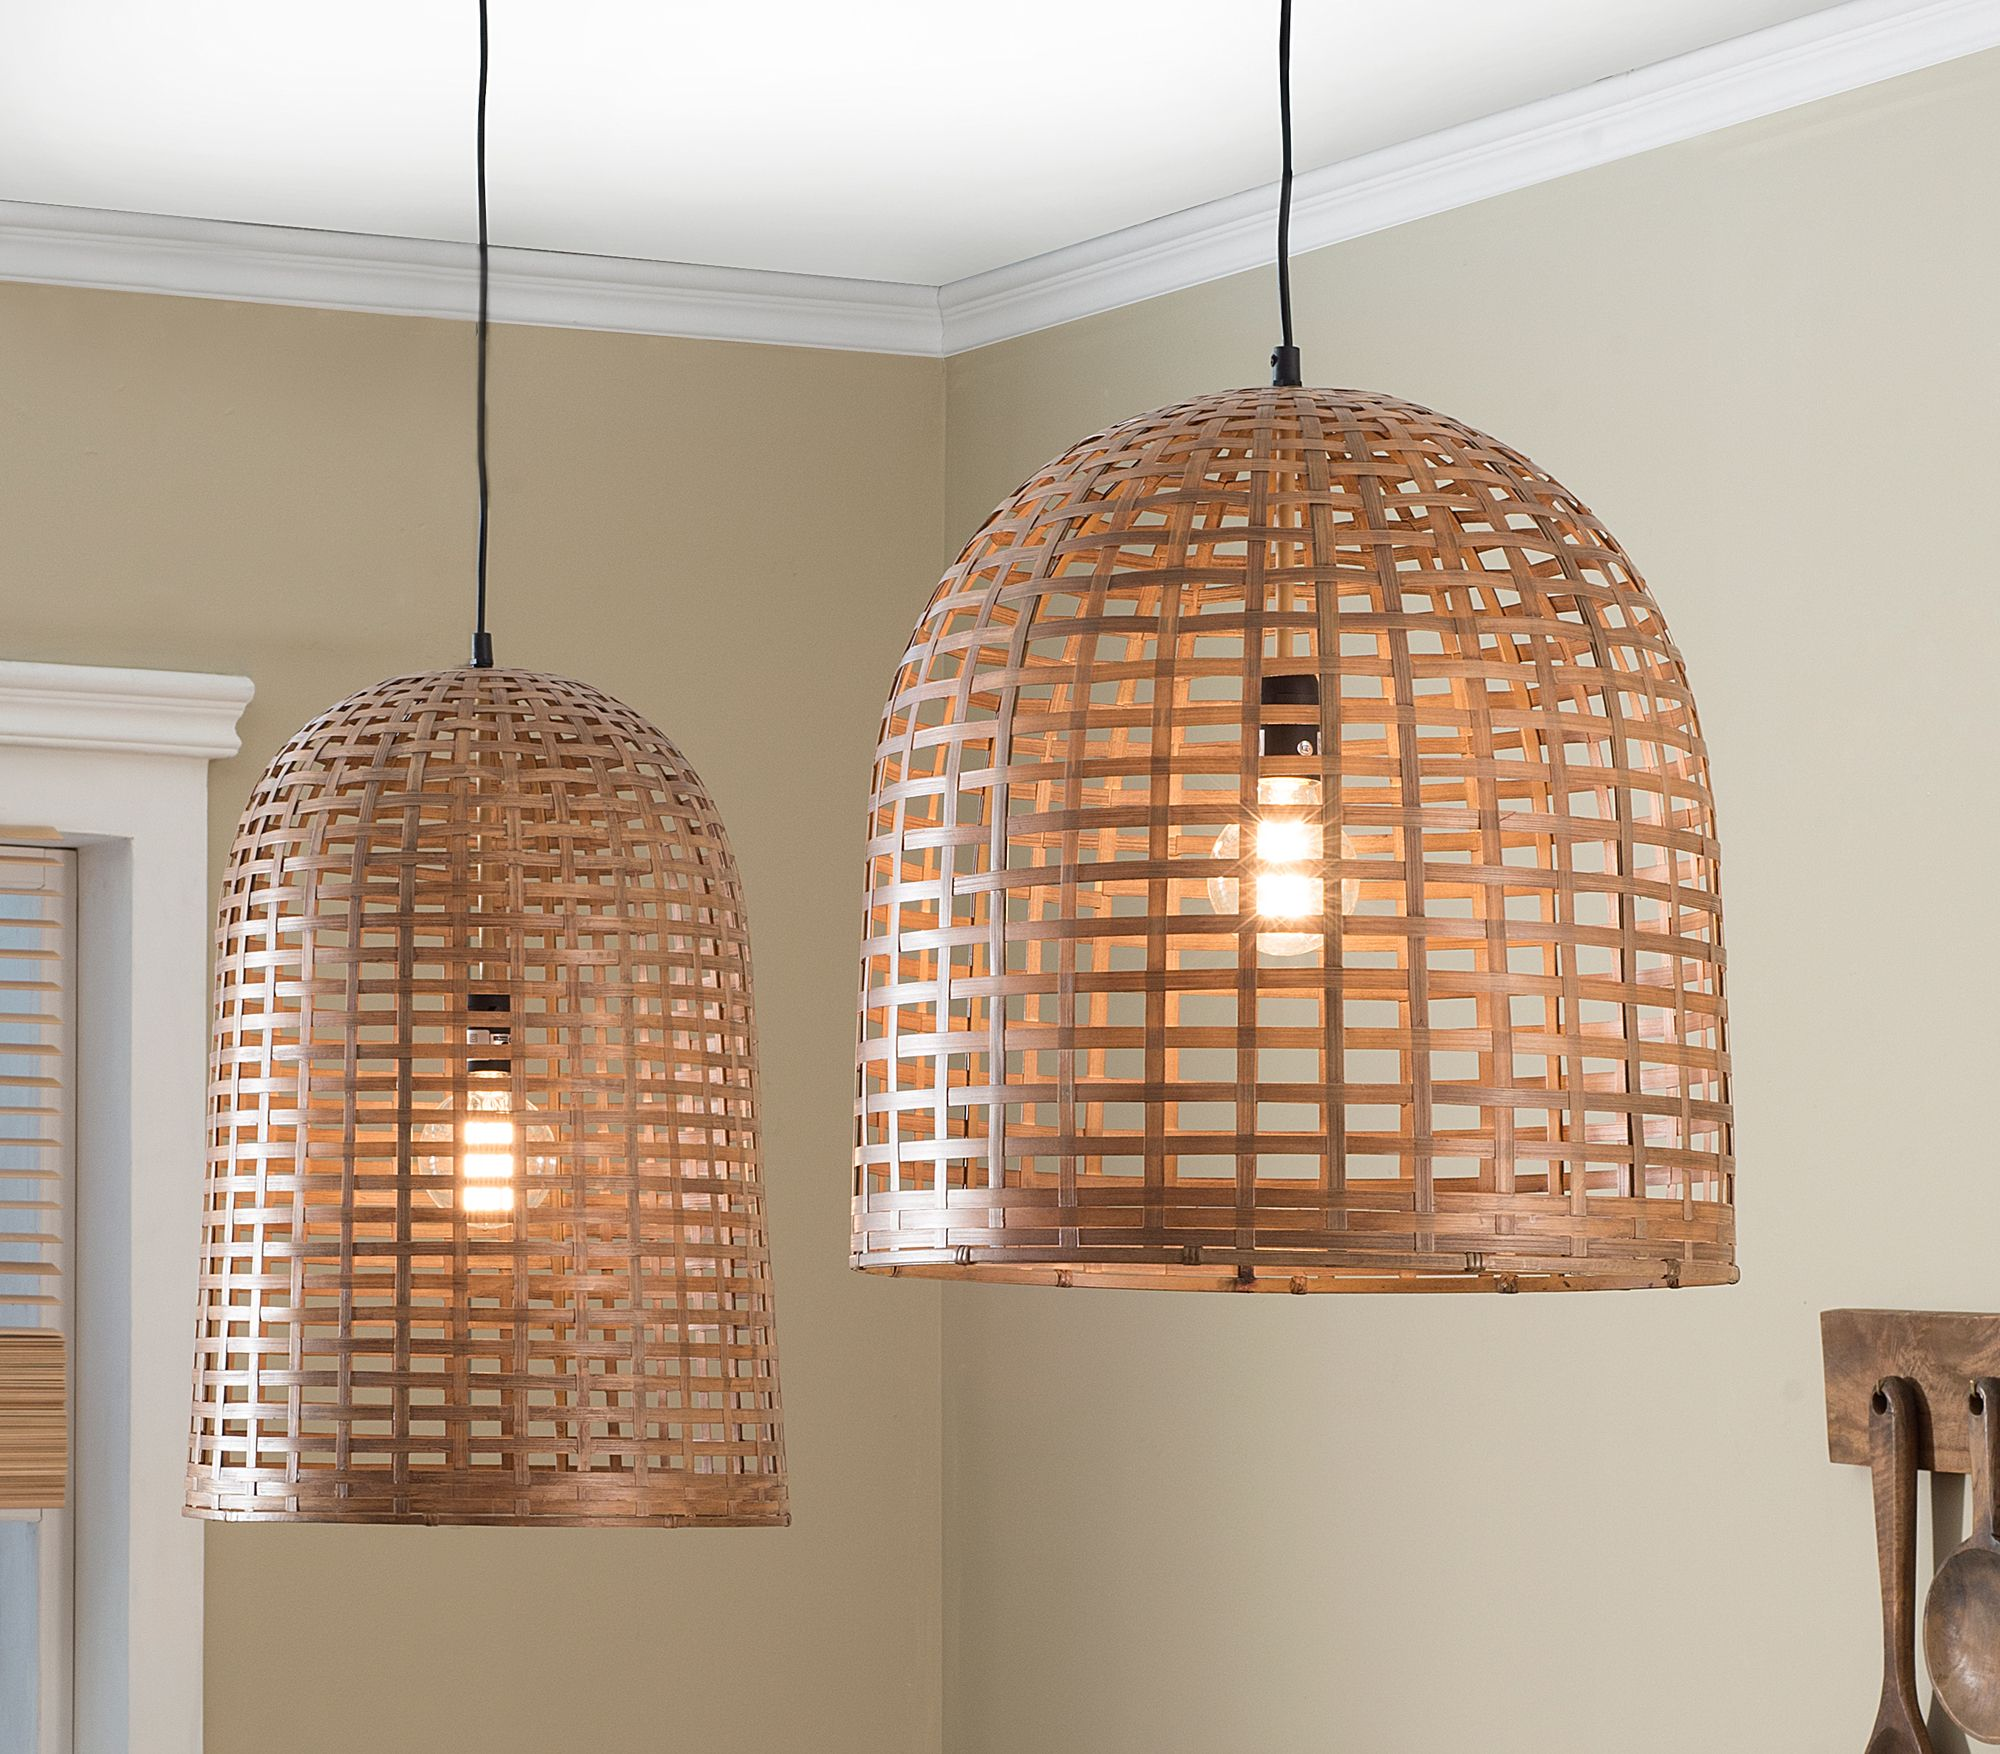 Creative co op lighting - Casual Country Banboo Bell Pendant Lamps Creative Co Op Home